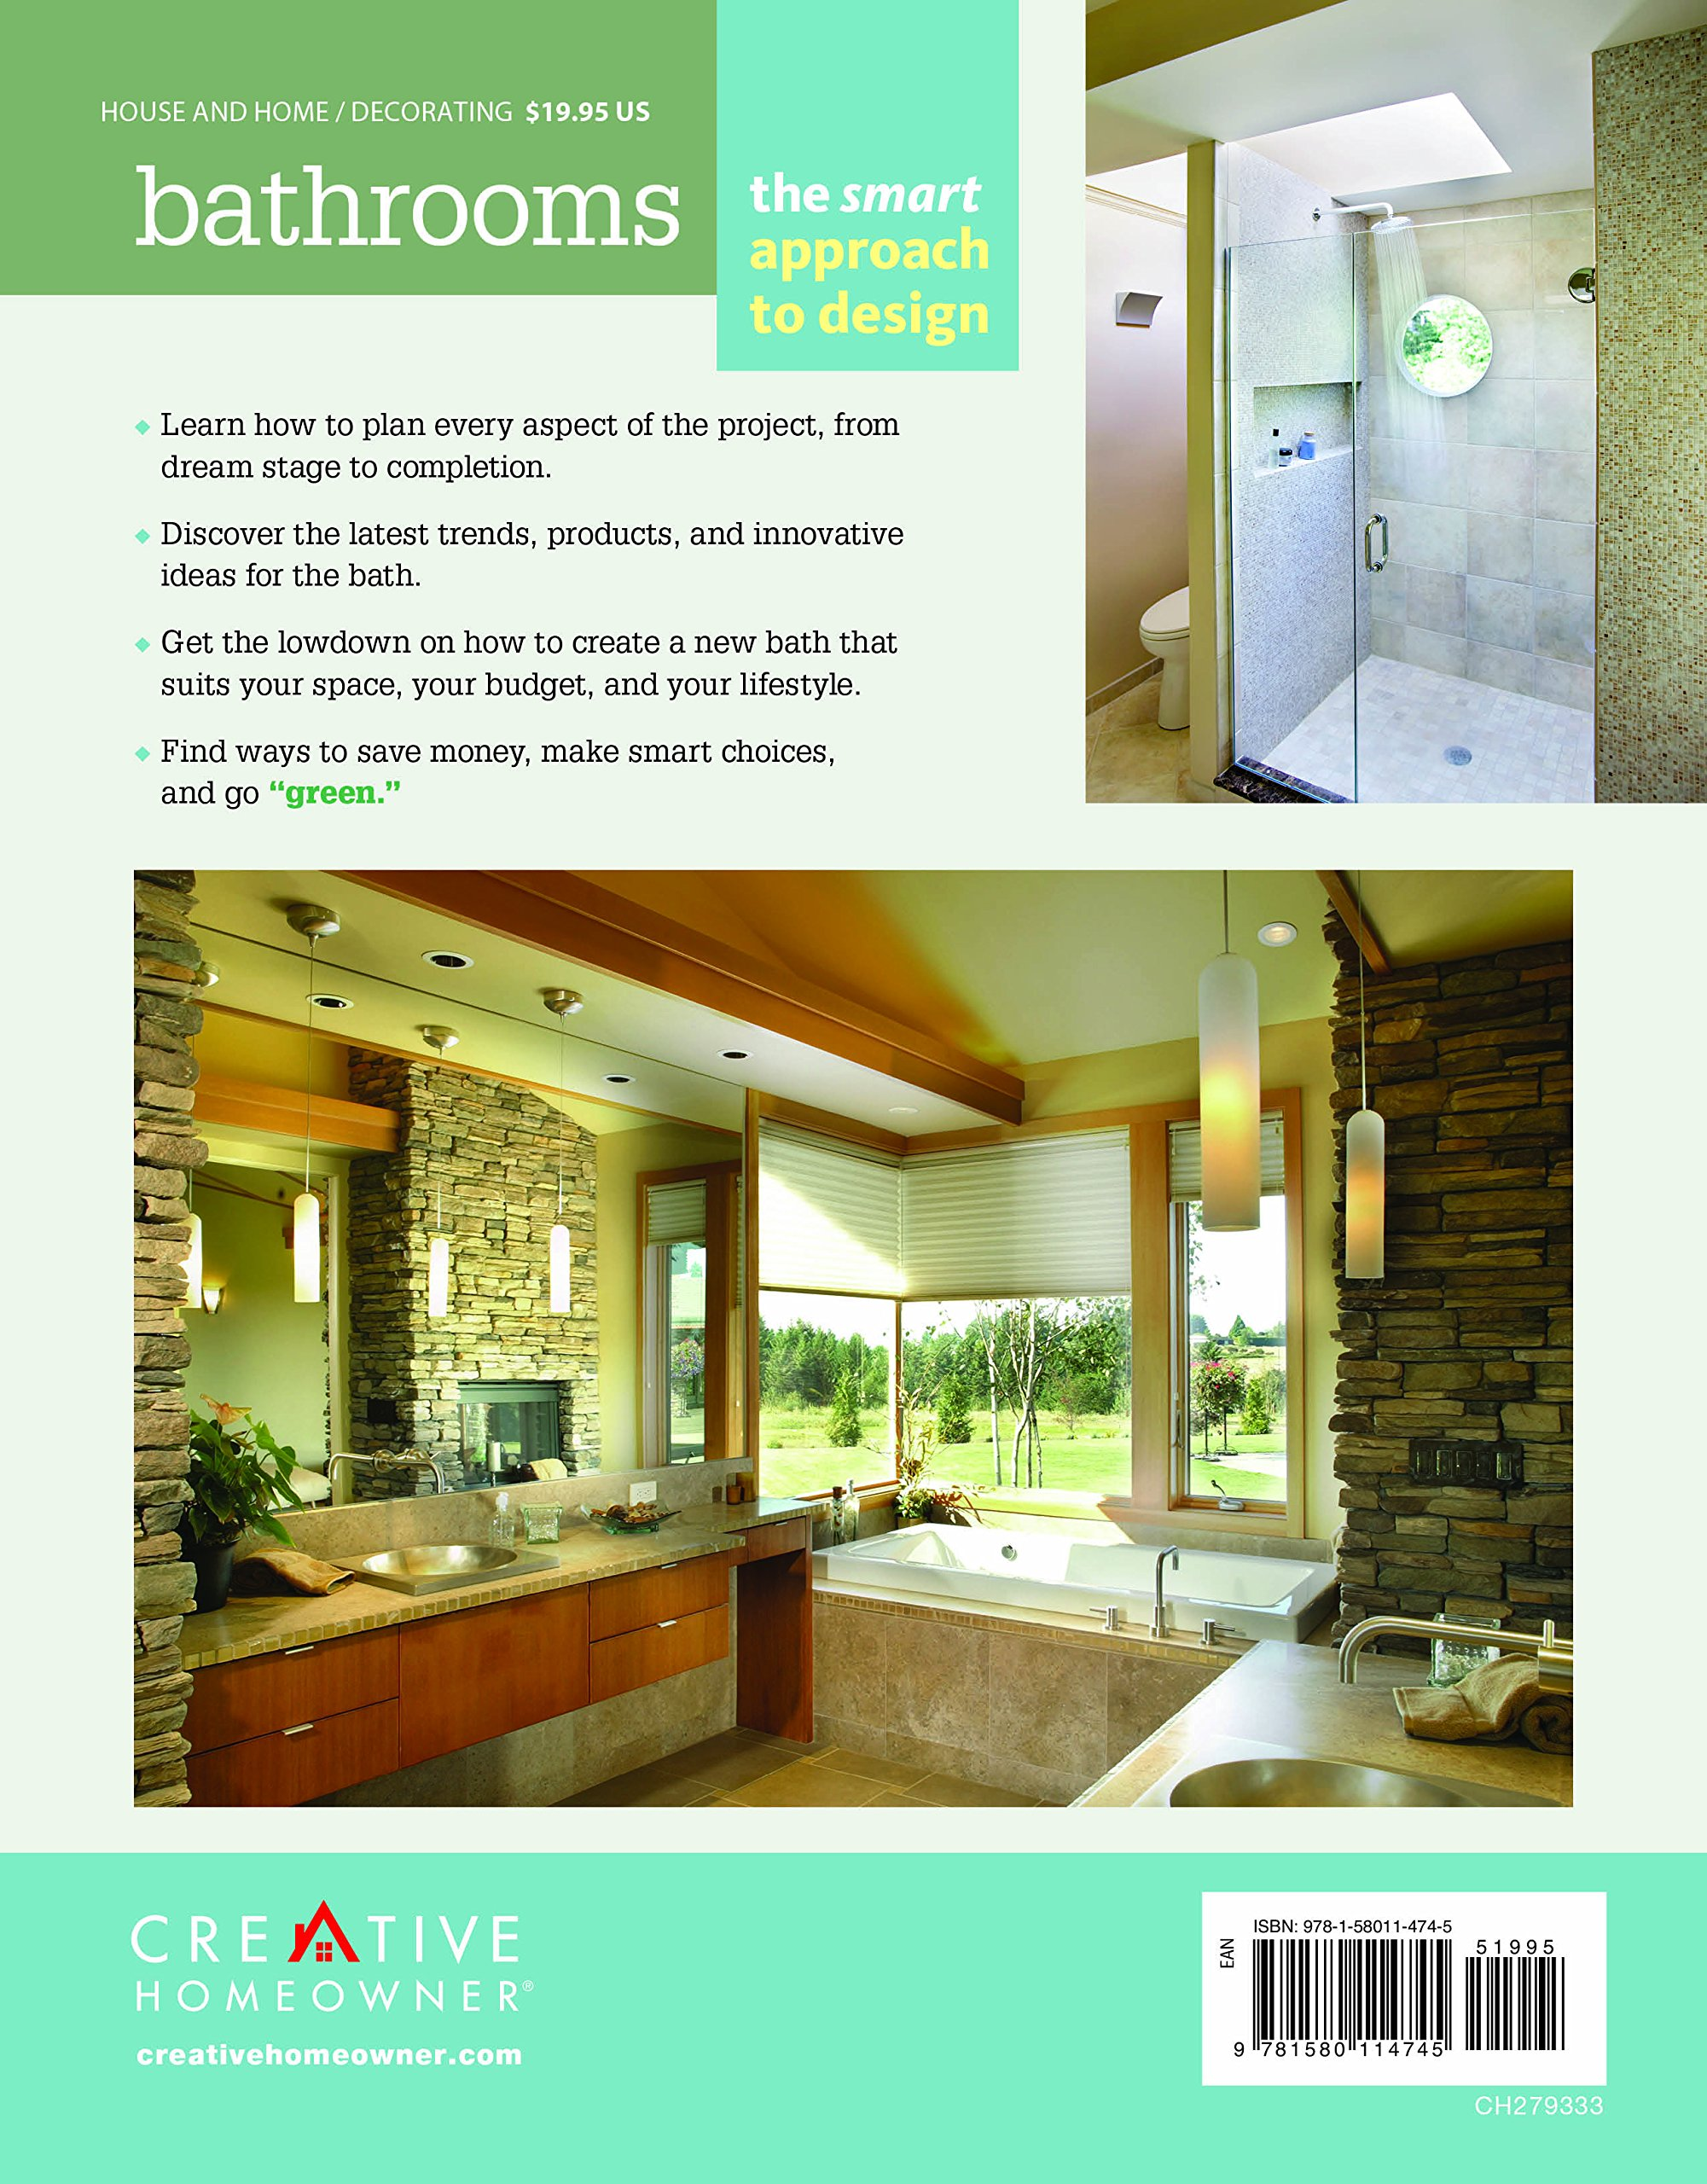 Bathrooms The Smart Approach To Design Home Decorating Editors Of Creative Homeowner Bathroom How 9781580114745 Amazon